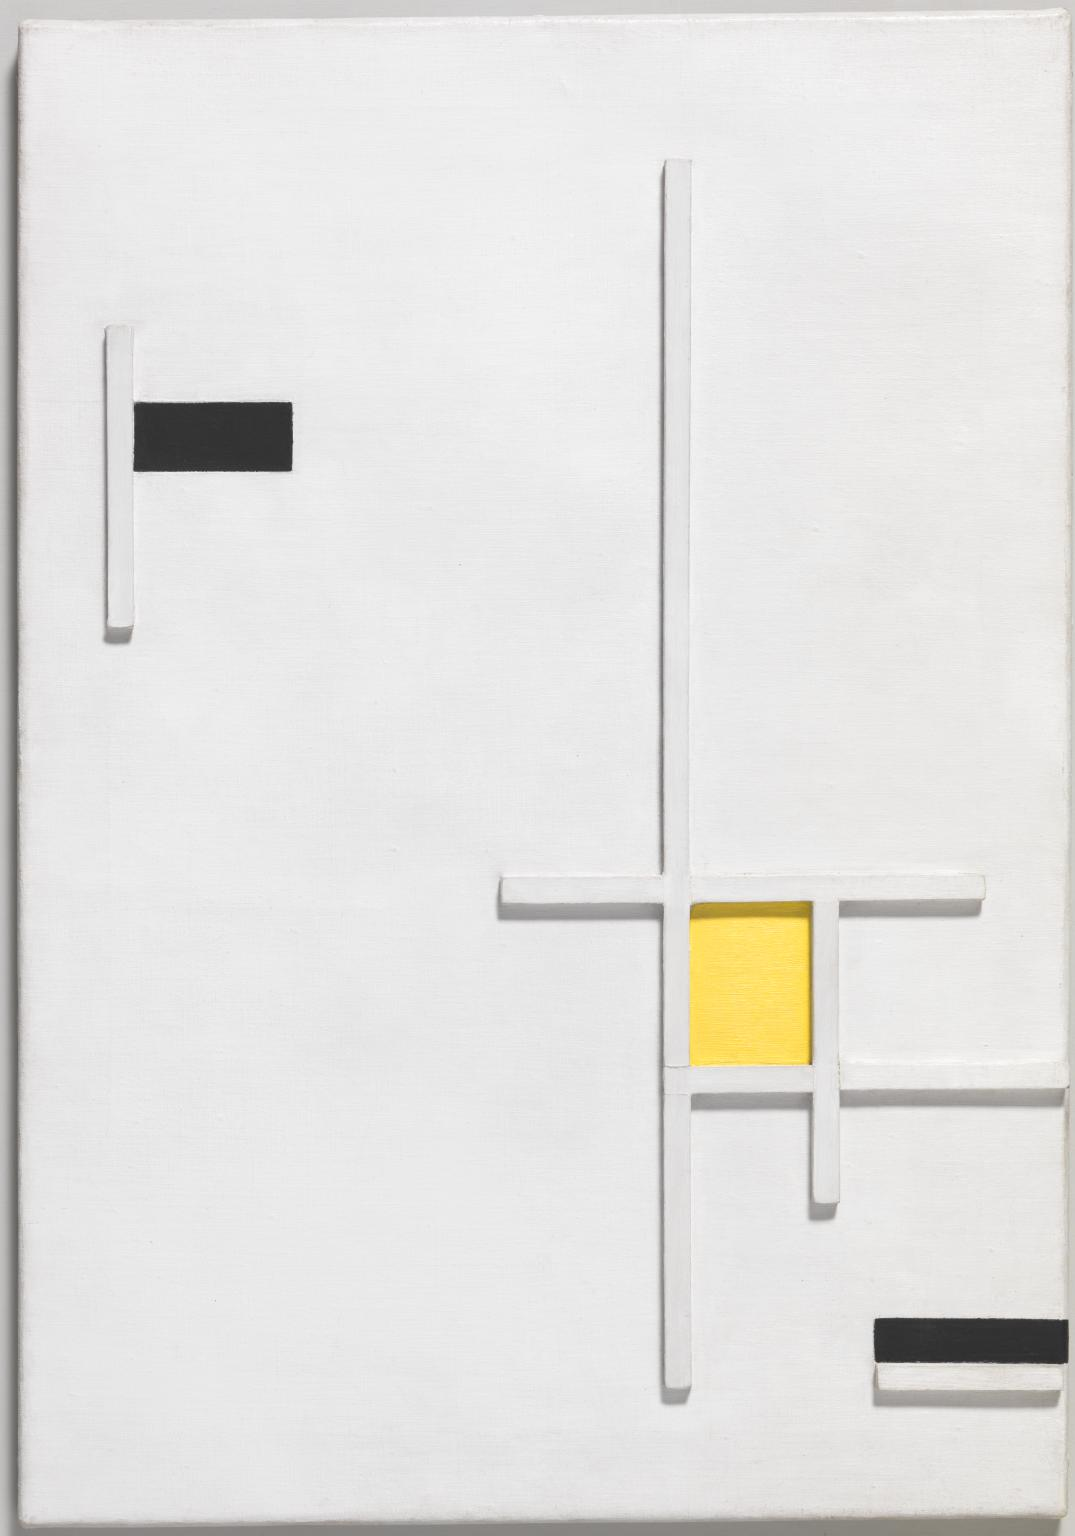 Marlow Moss, Composition in Yellow, Black and White, 1949.